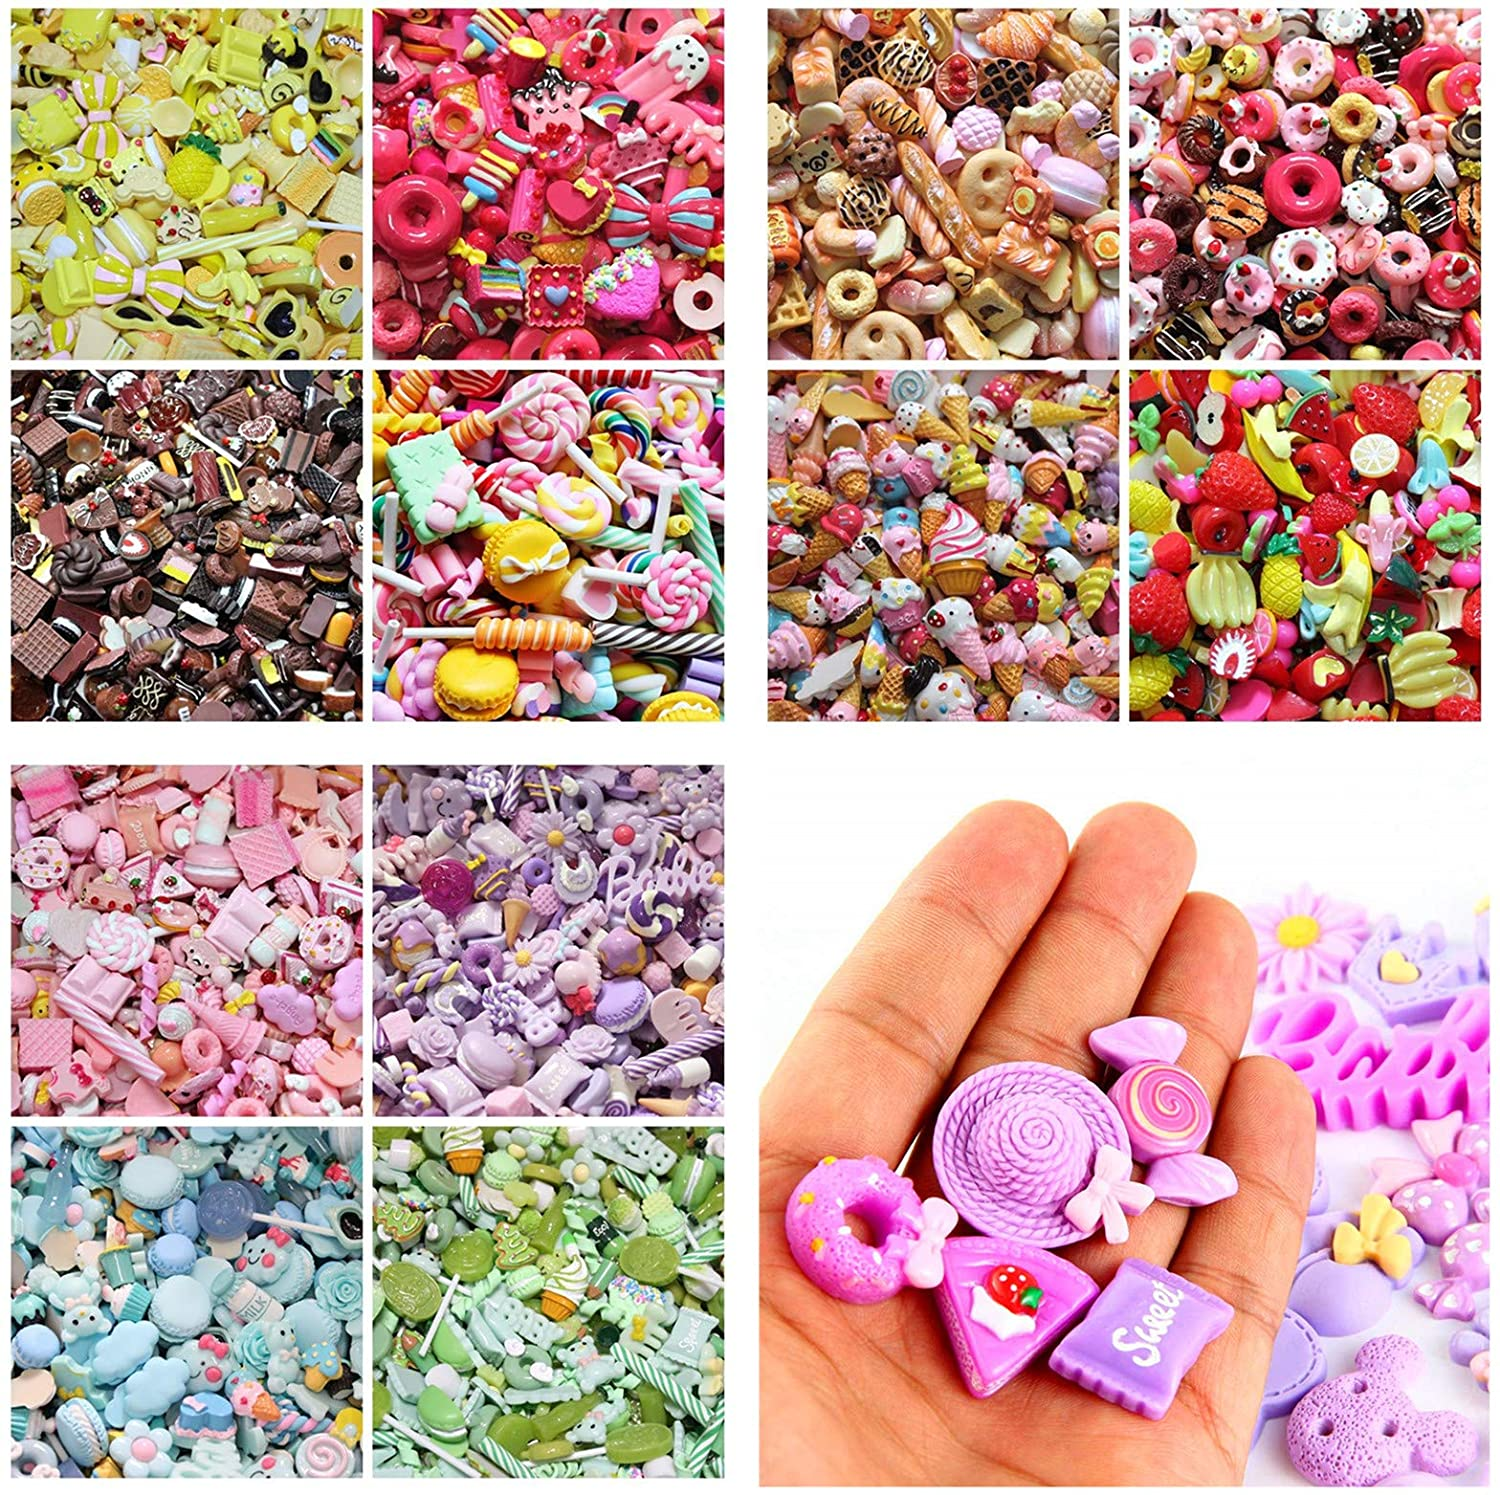 30Pcs assortiti cute Candy perline frutta dessert gelato in resina ciondoli fette Flatback bottoni per artigianato accessori scrapbooking del telefono Decor Lilac 10mm-25mm